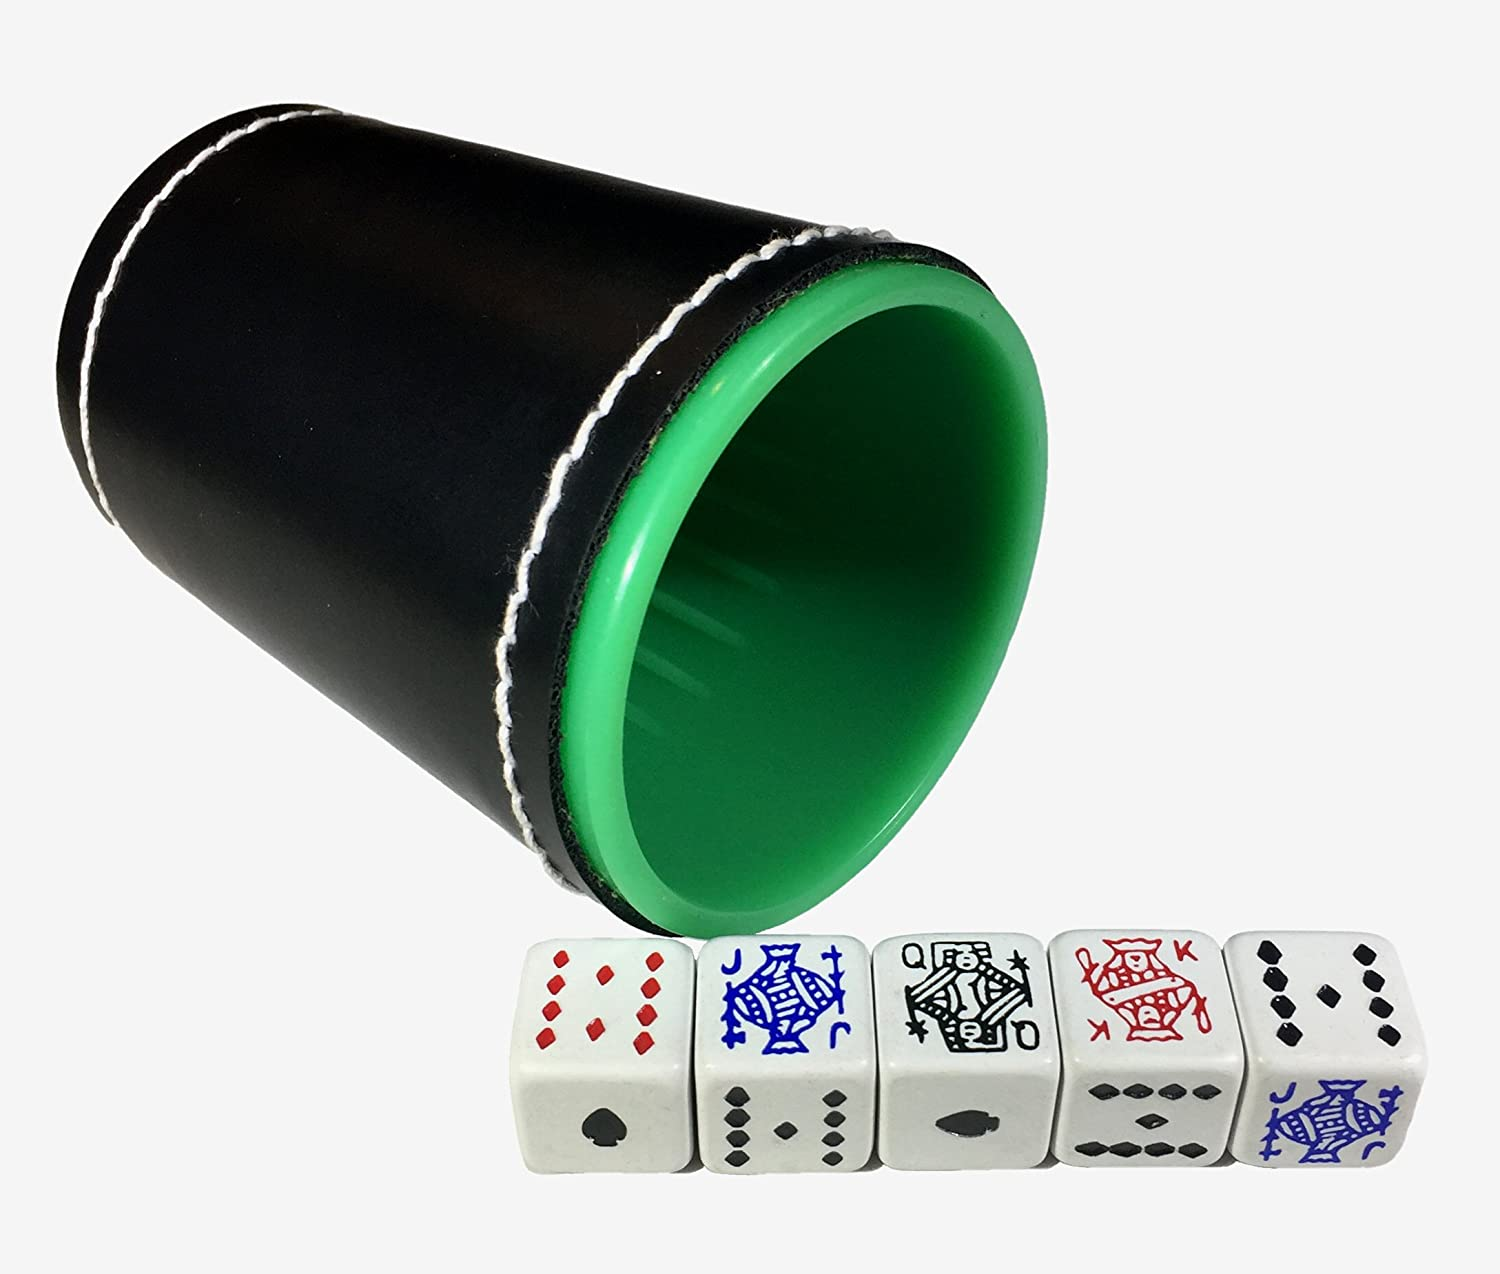 American Poker Dice Cup Plastic Cubilete with Spanish Naipes and Poker Cardboard Party Playing Cards Deck Casino Game Bundle